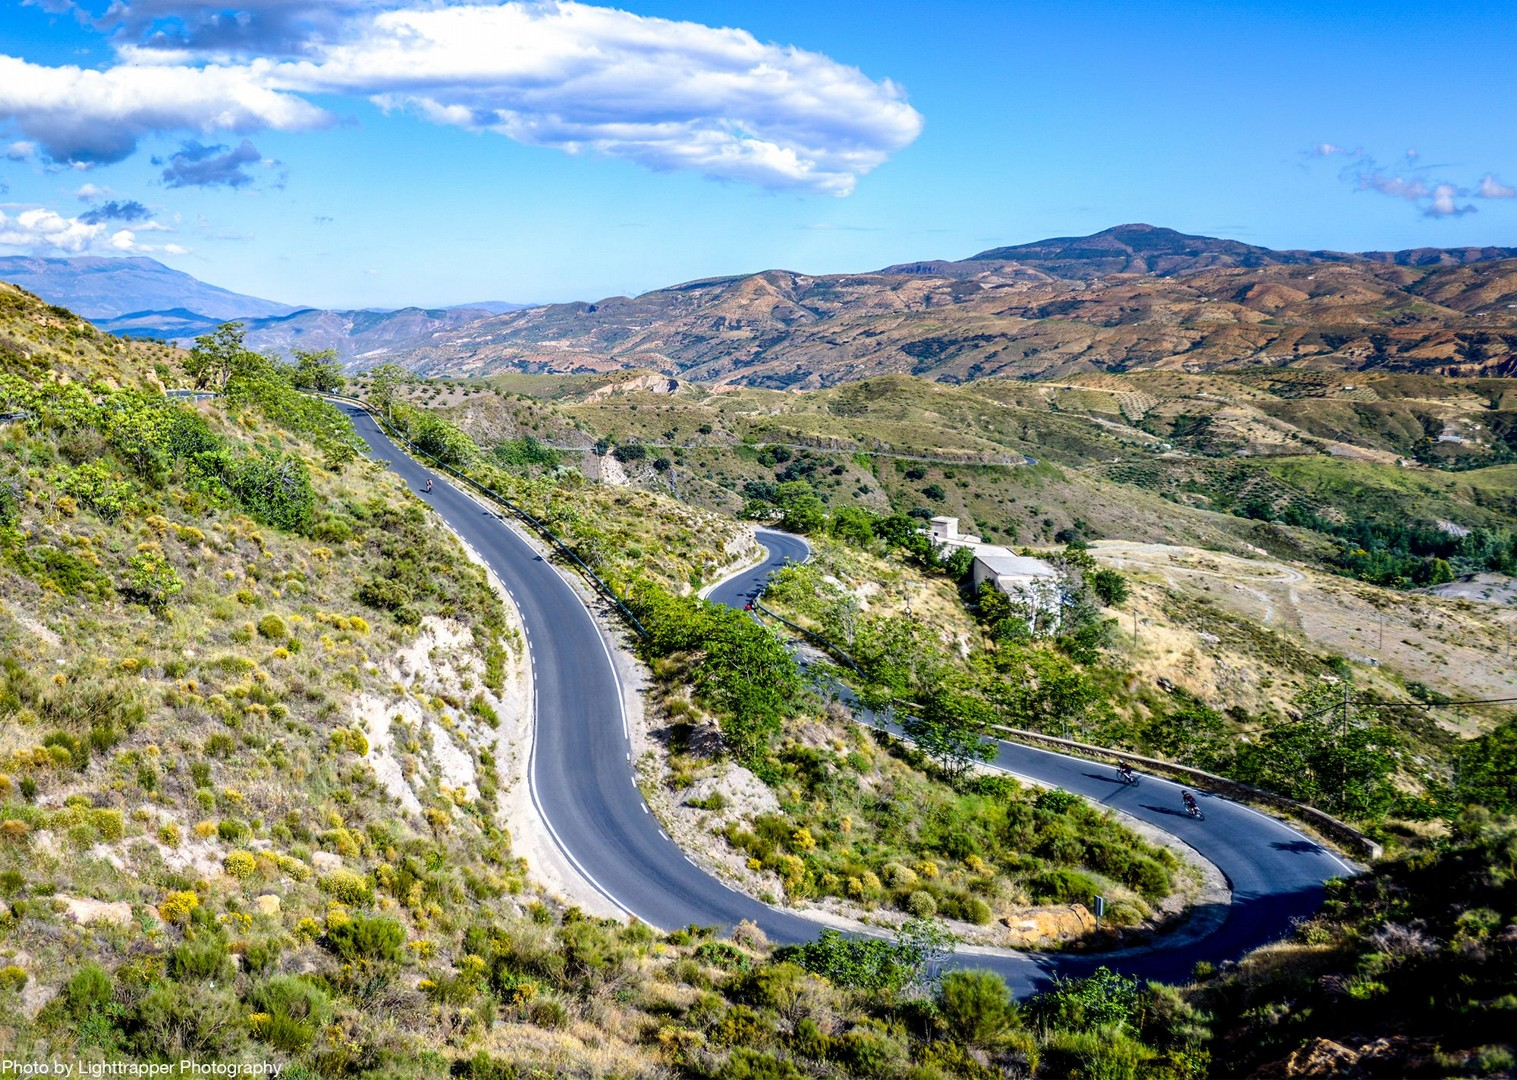 basque-country-to-andalucia-21-days-cycling-holiday-guided-road.jpg - Spain - Basque Country to Andalucia - North to South (21 Days) - Guided Road Cycling Holiday - Road Cycling